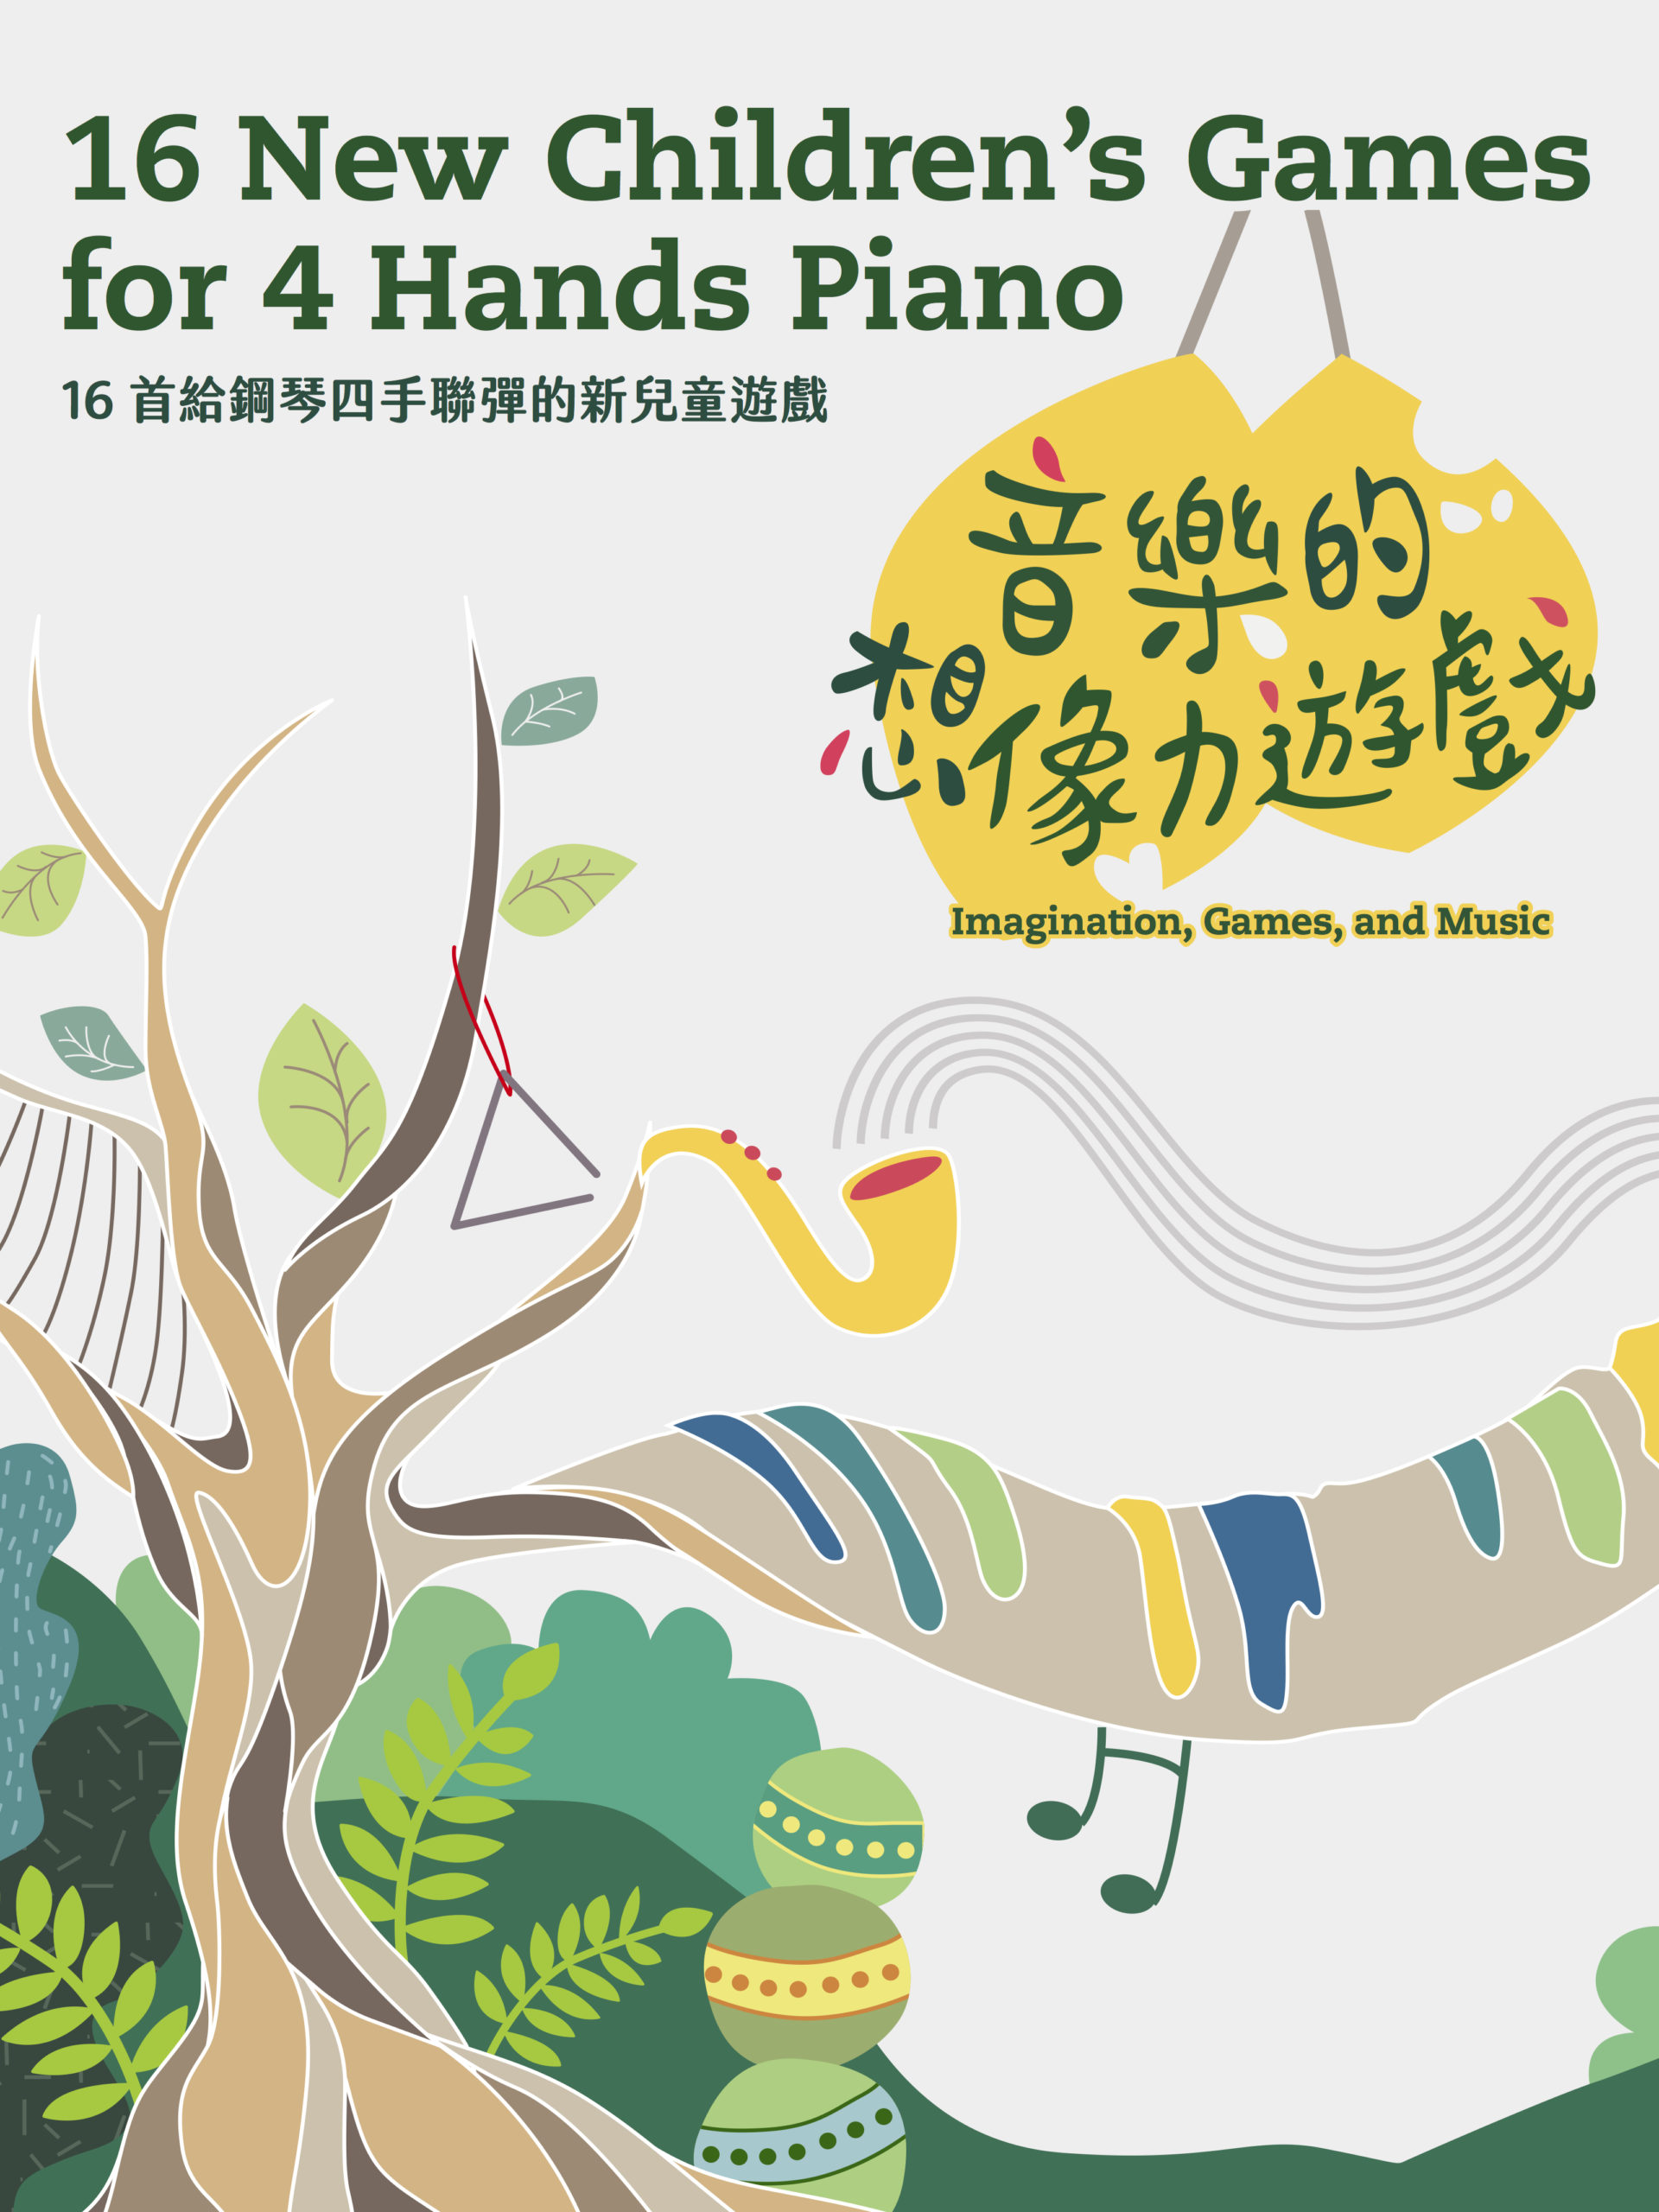 16 New Children's Games for Four Hands Piano